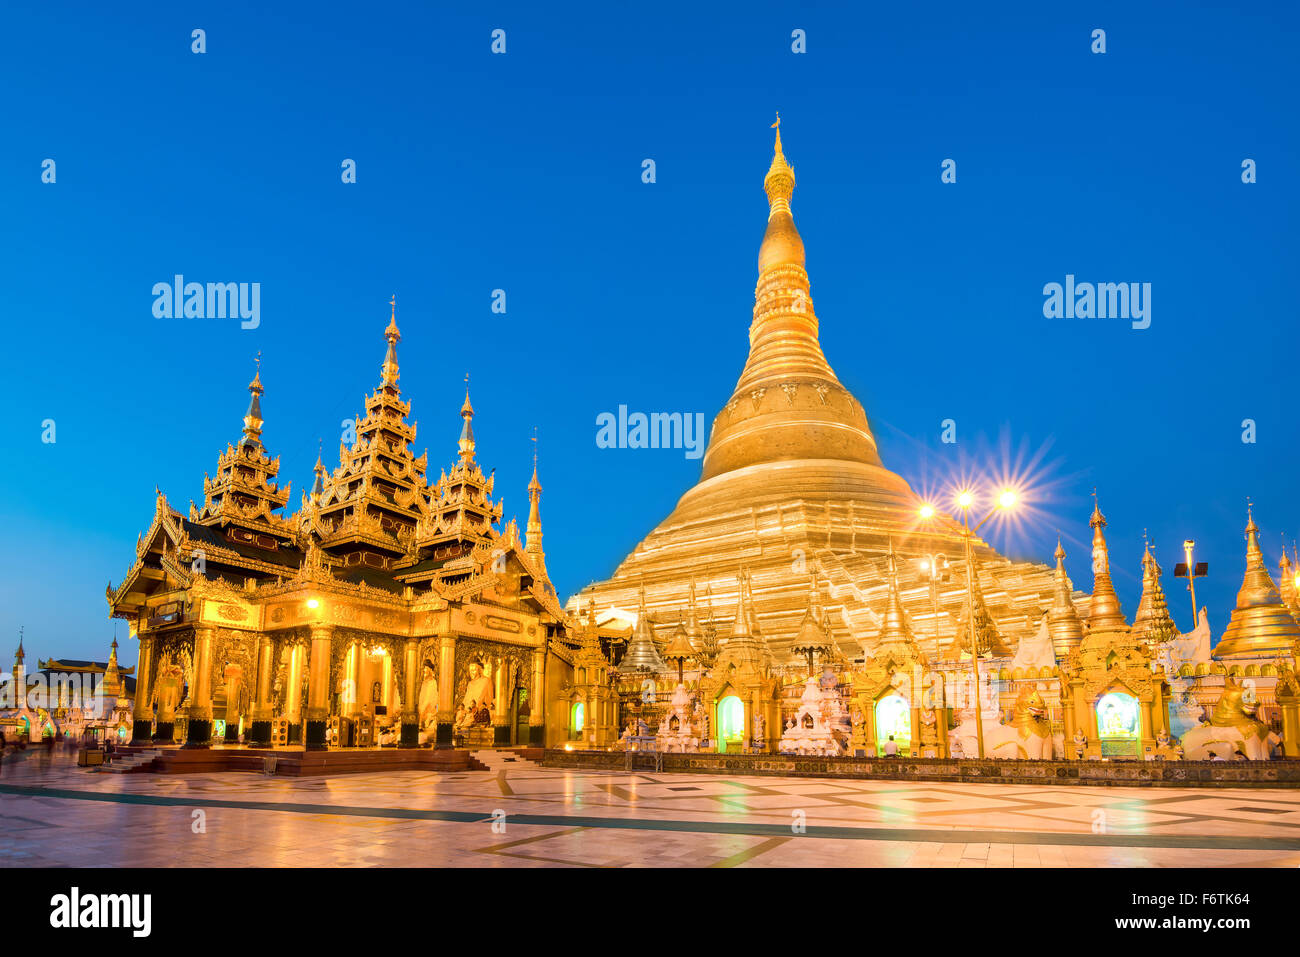 Yangon, Myanmar view of Shwedagon Pagoda at dusk. - Stock Image